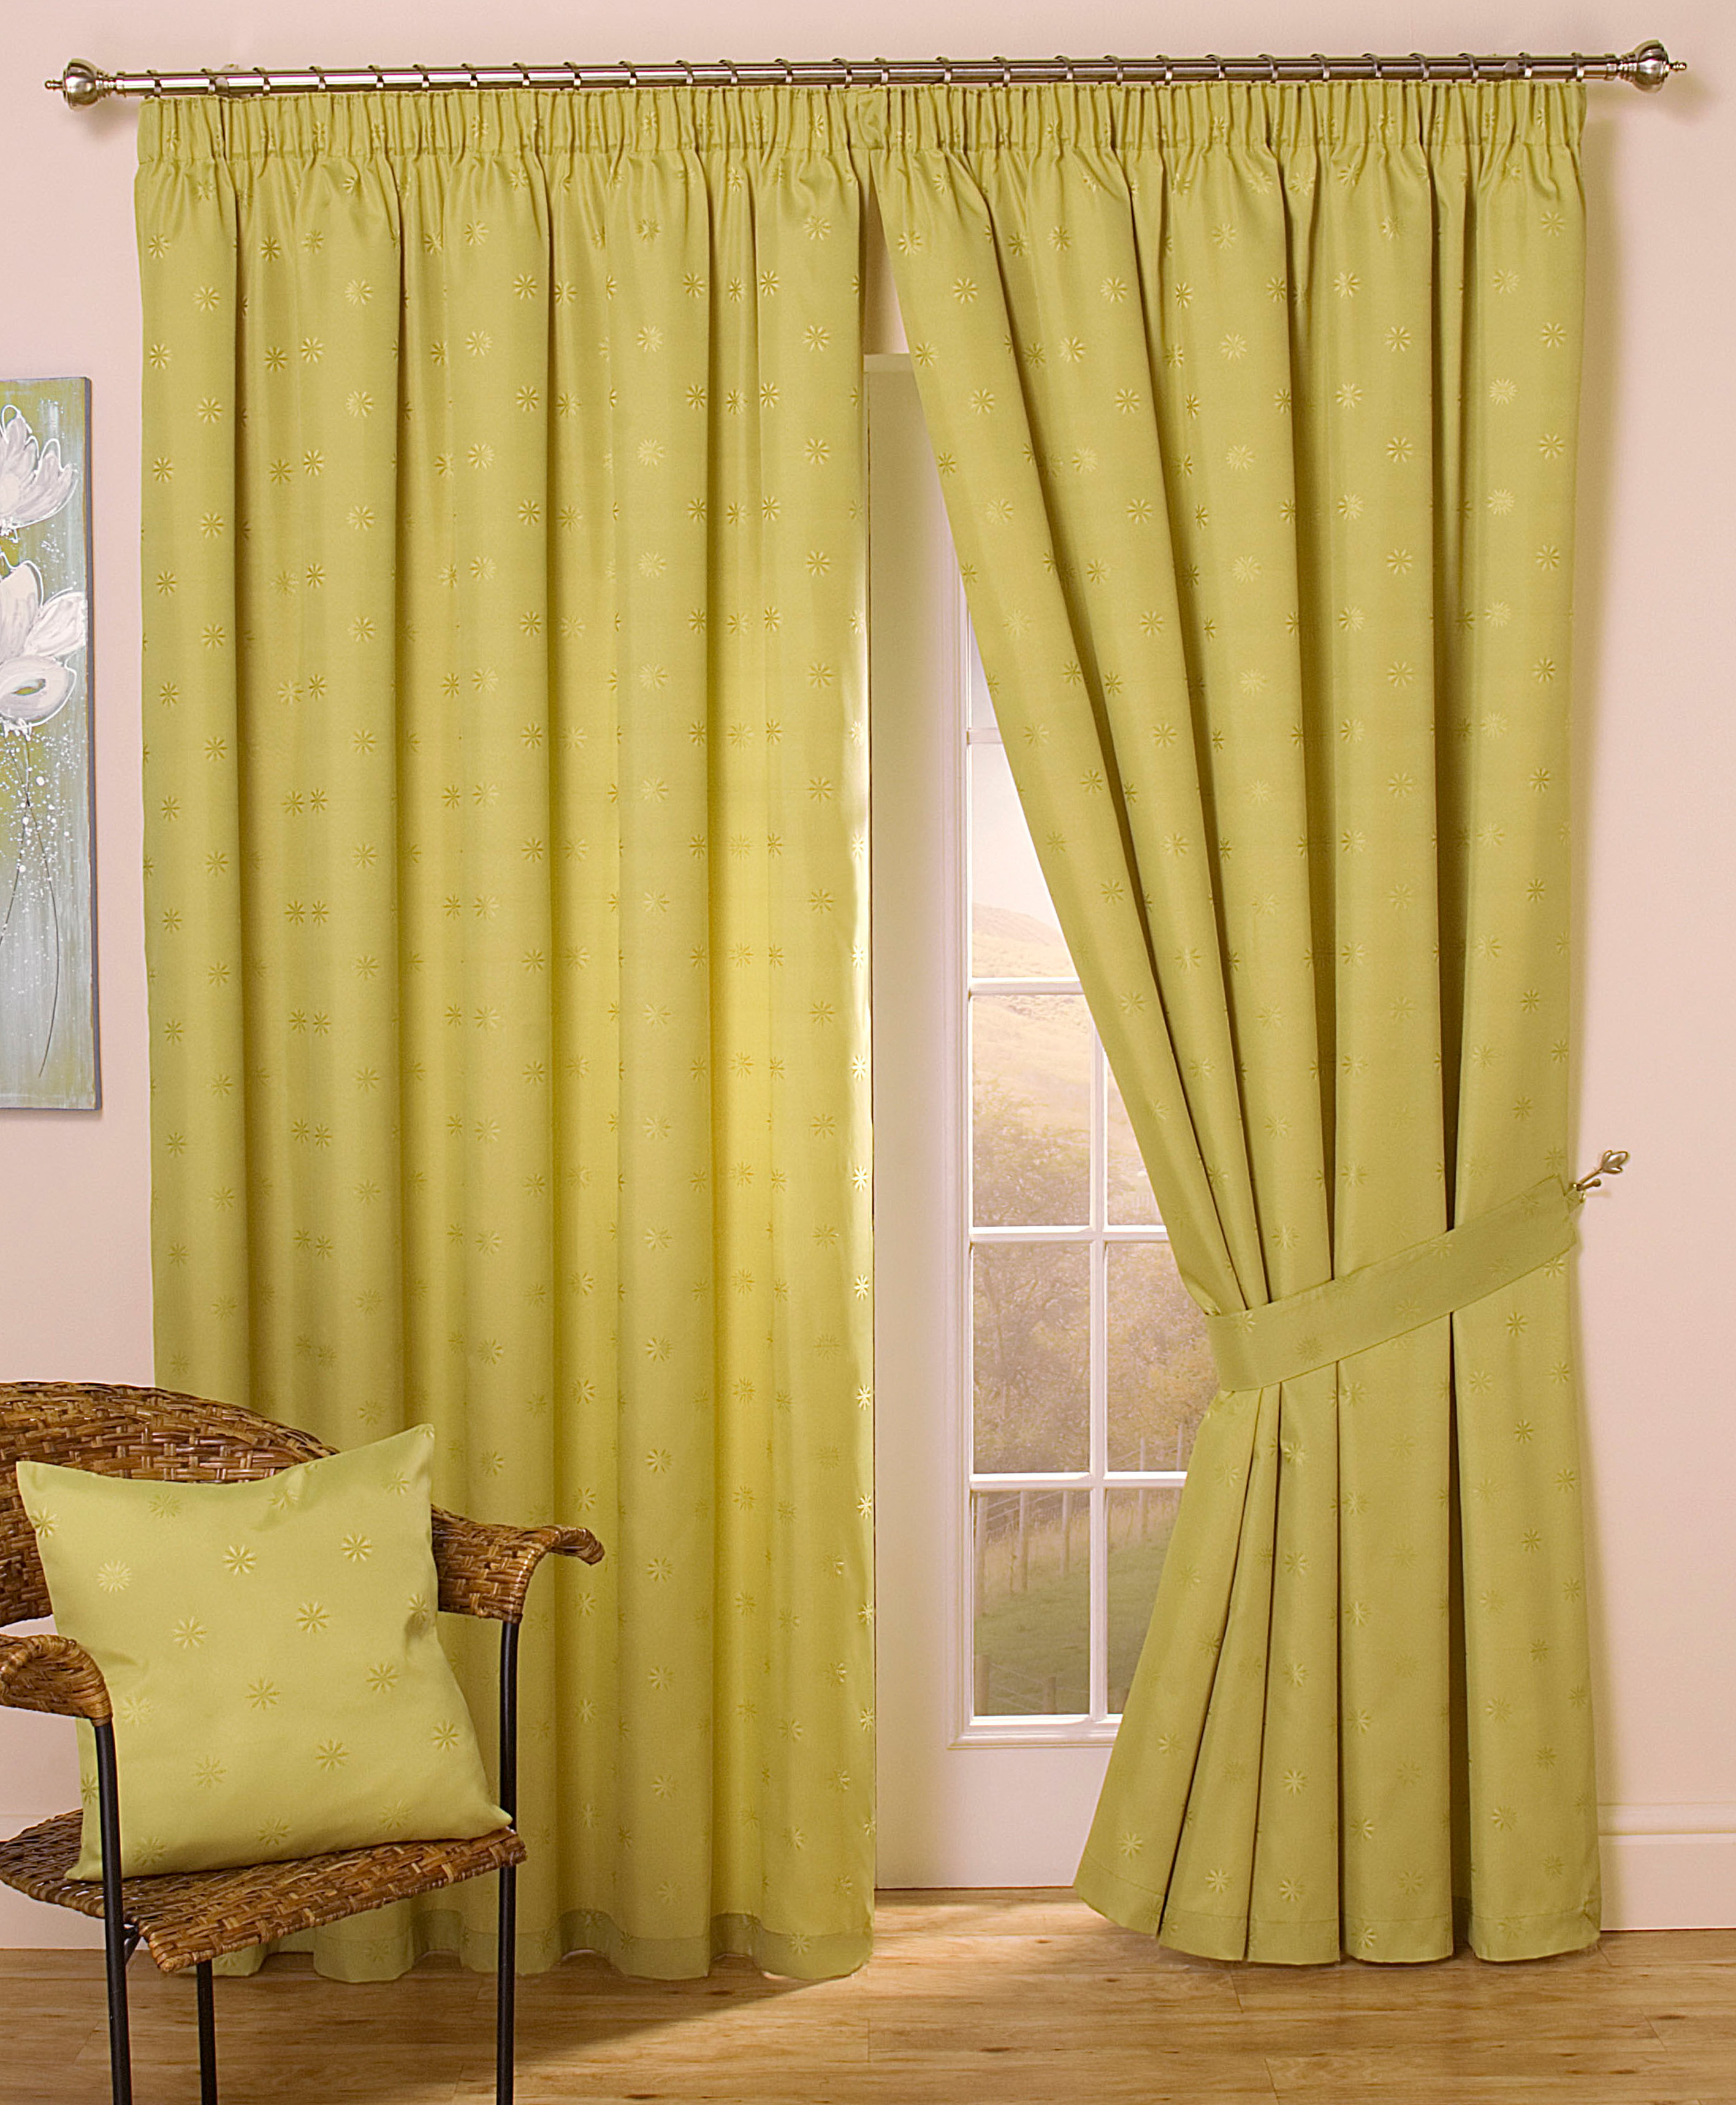 Thermal Curtain Panels Cheap